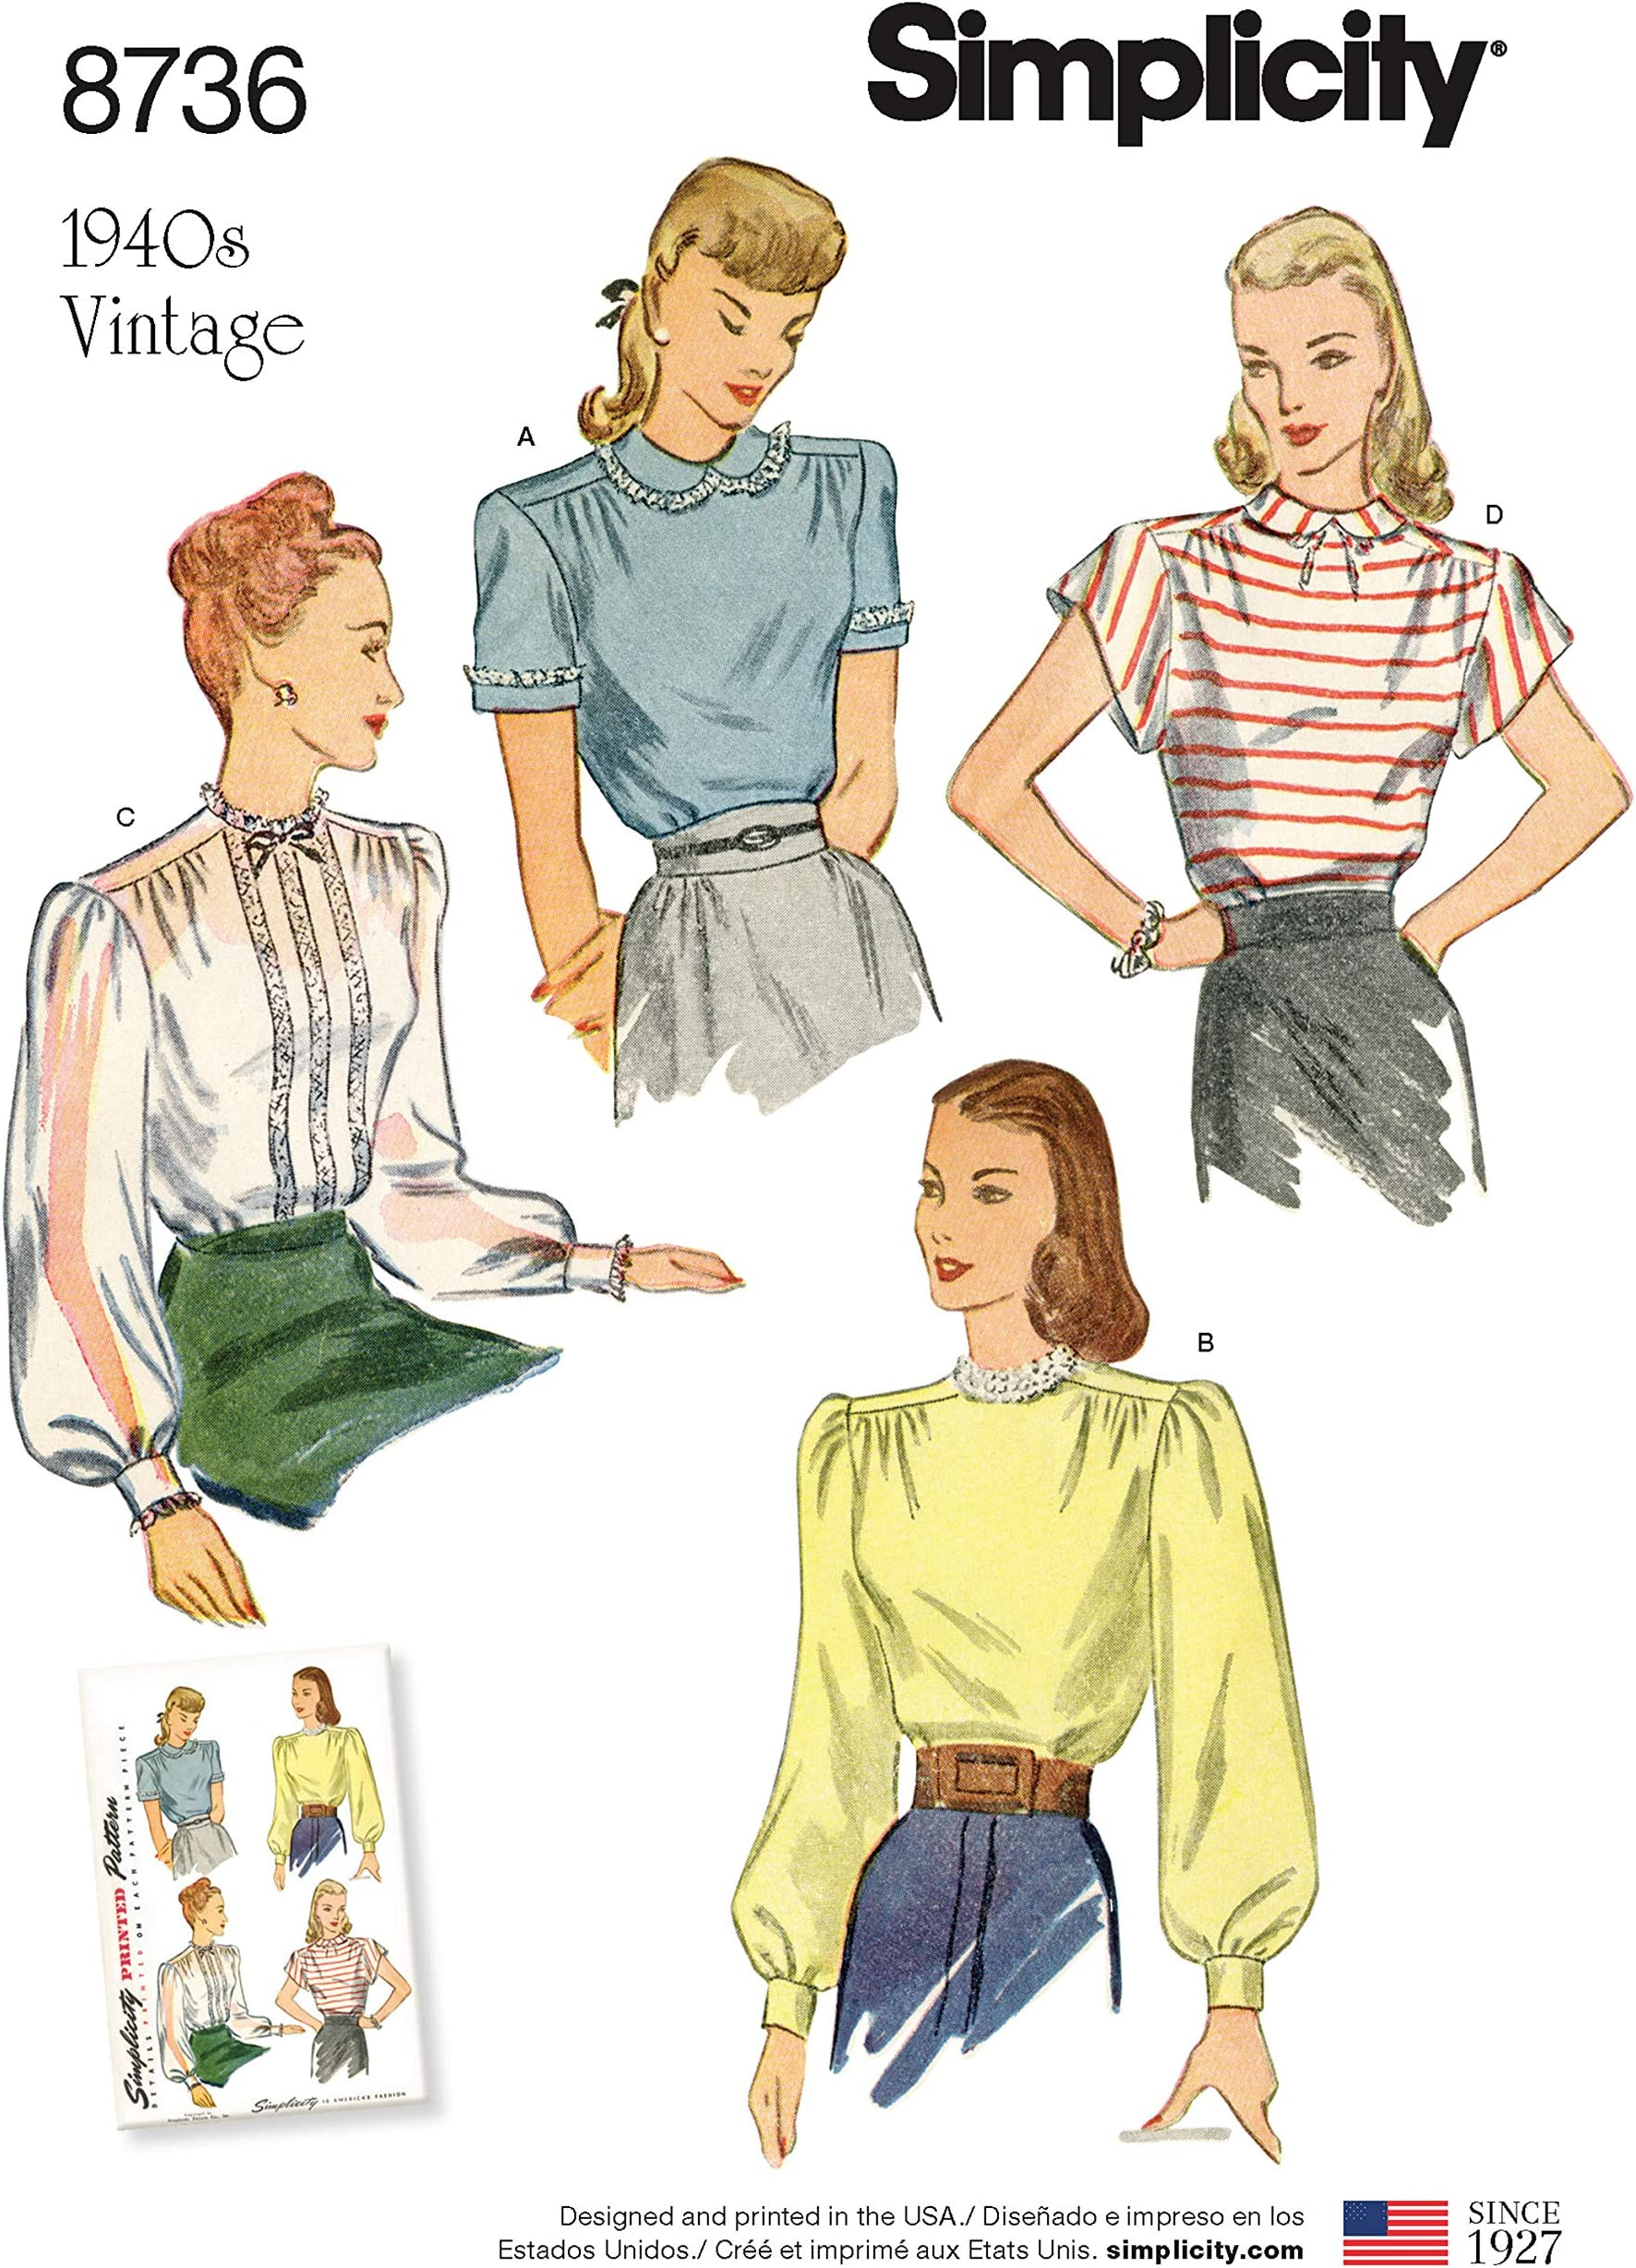 1940s Sewing Pattern Fitted Blouse Simplicity#1120 Vintage Bust 36 Illusion Lace Overblouse Keyhole Top